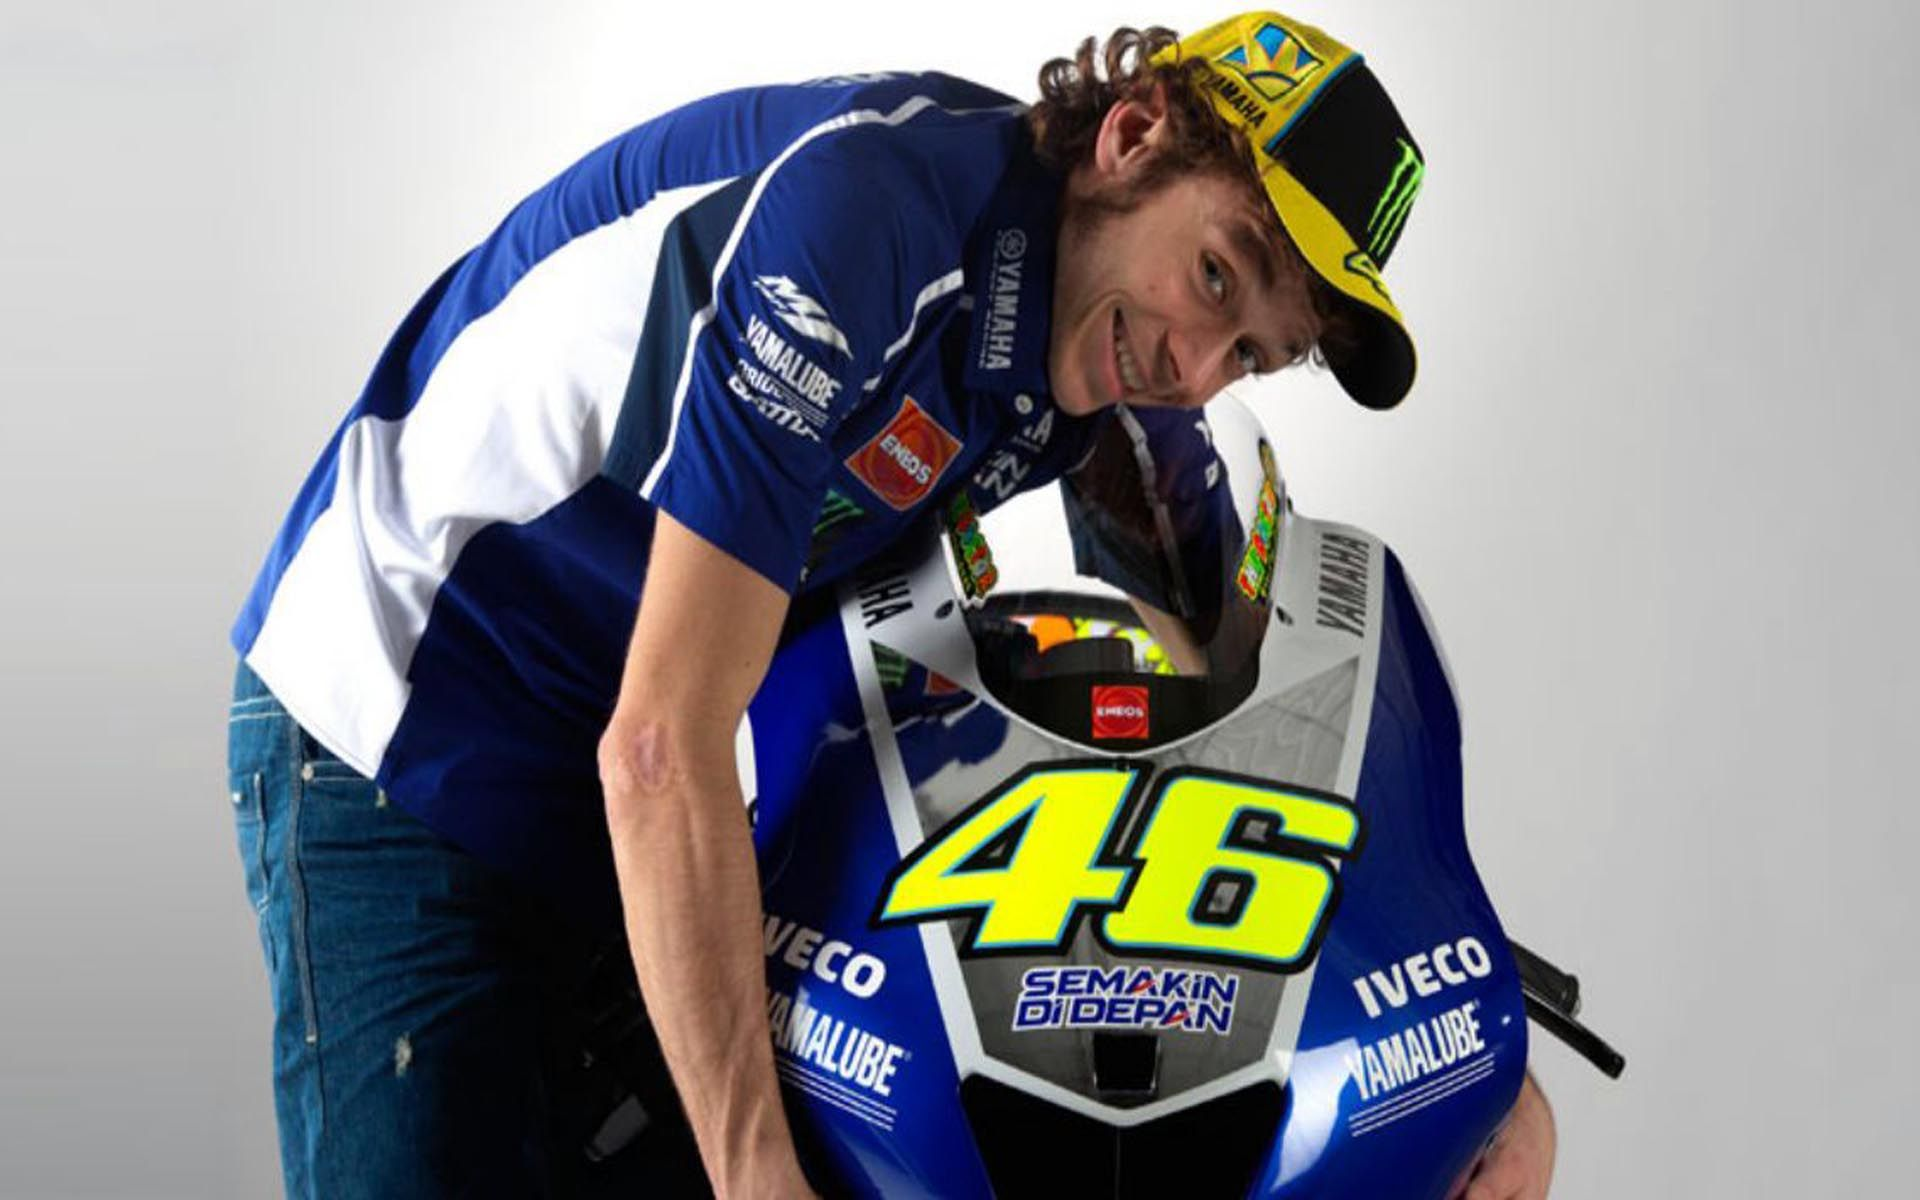 Wallpaper iphone valentino rossi - Valentino Rossi Ducati Bike Motogp World Championship Hd Desktop 1920 1279 Valentino Rossi Wallpaper